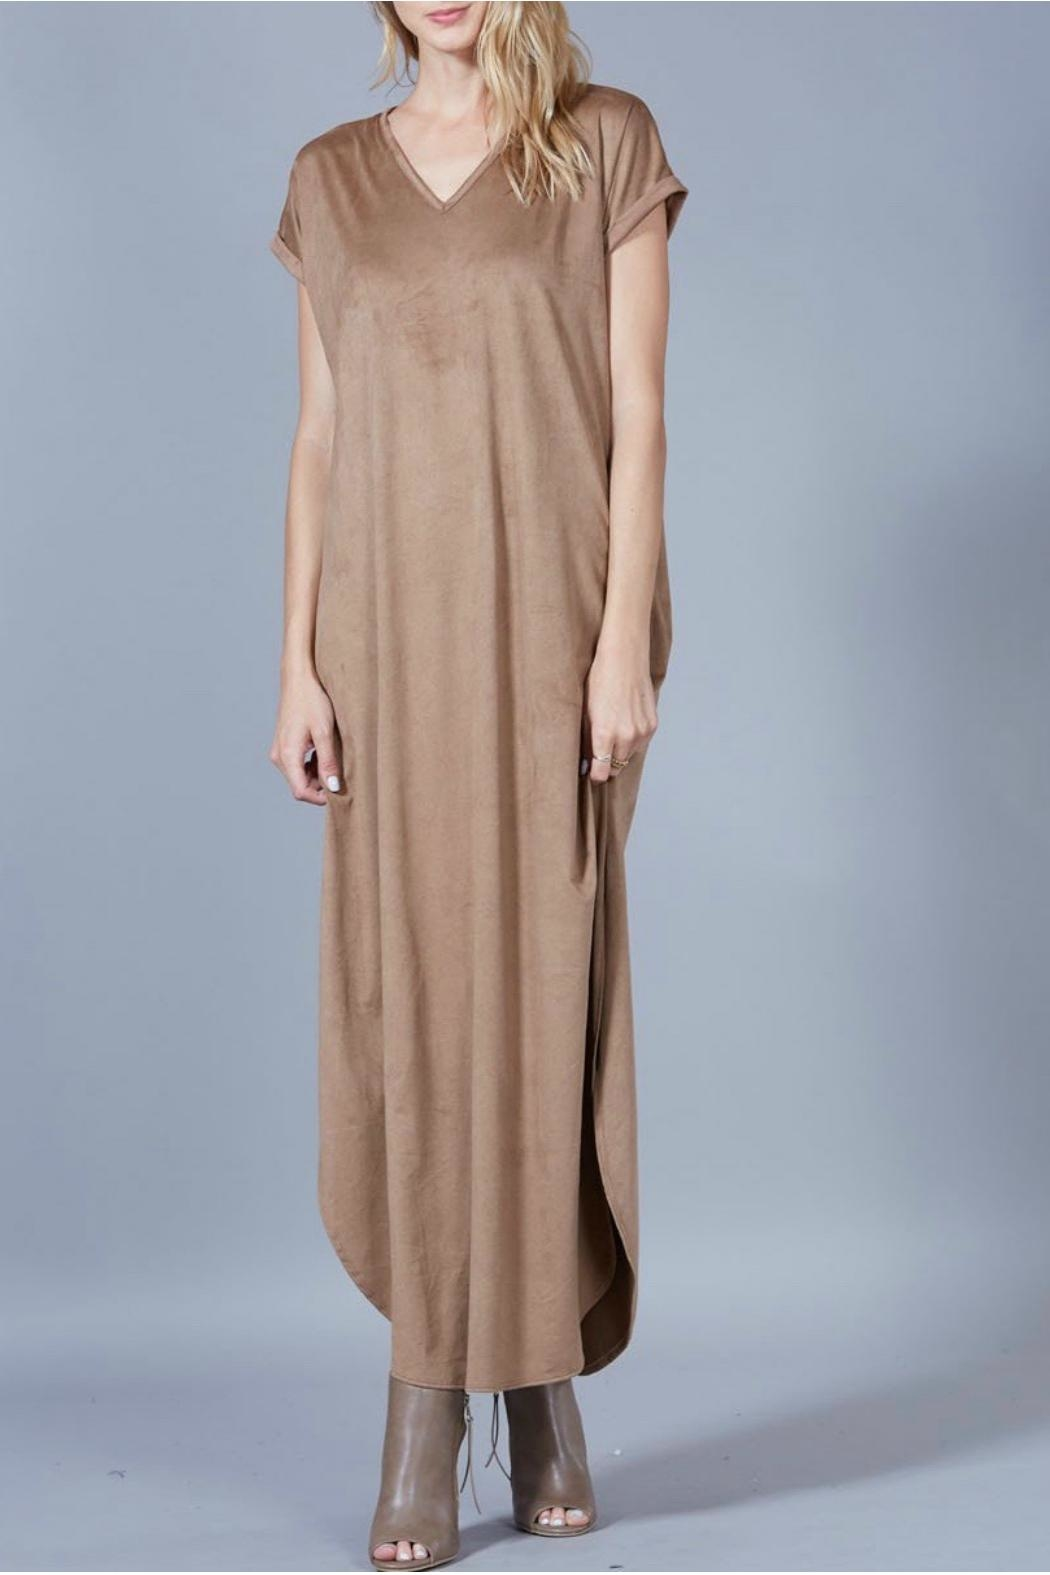 Peach Love California Suede Maxi Dress - Main Image